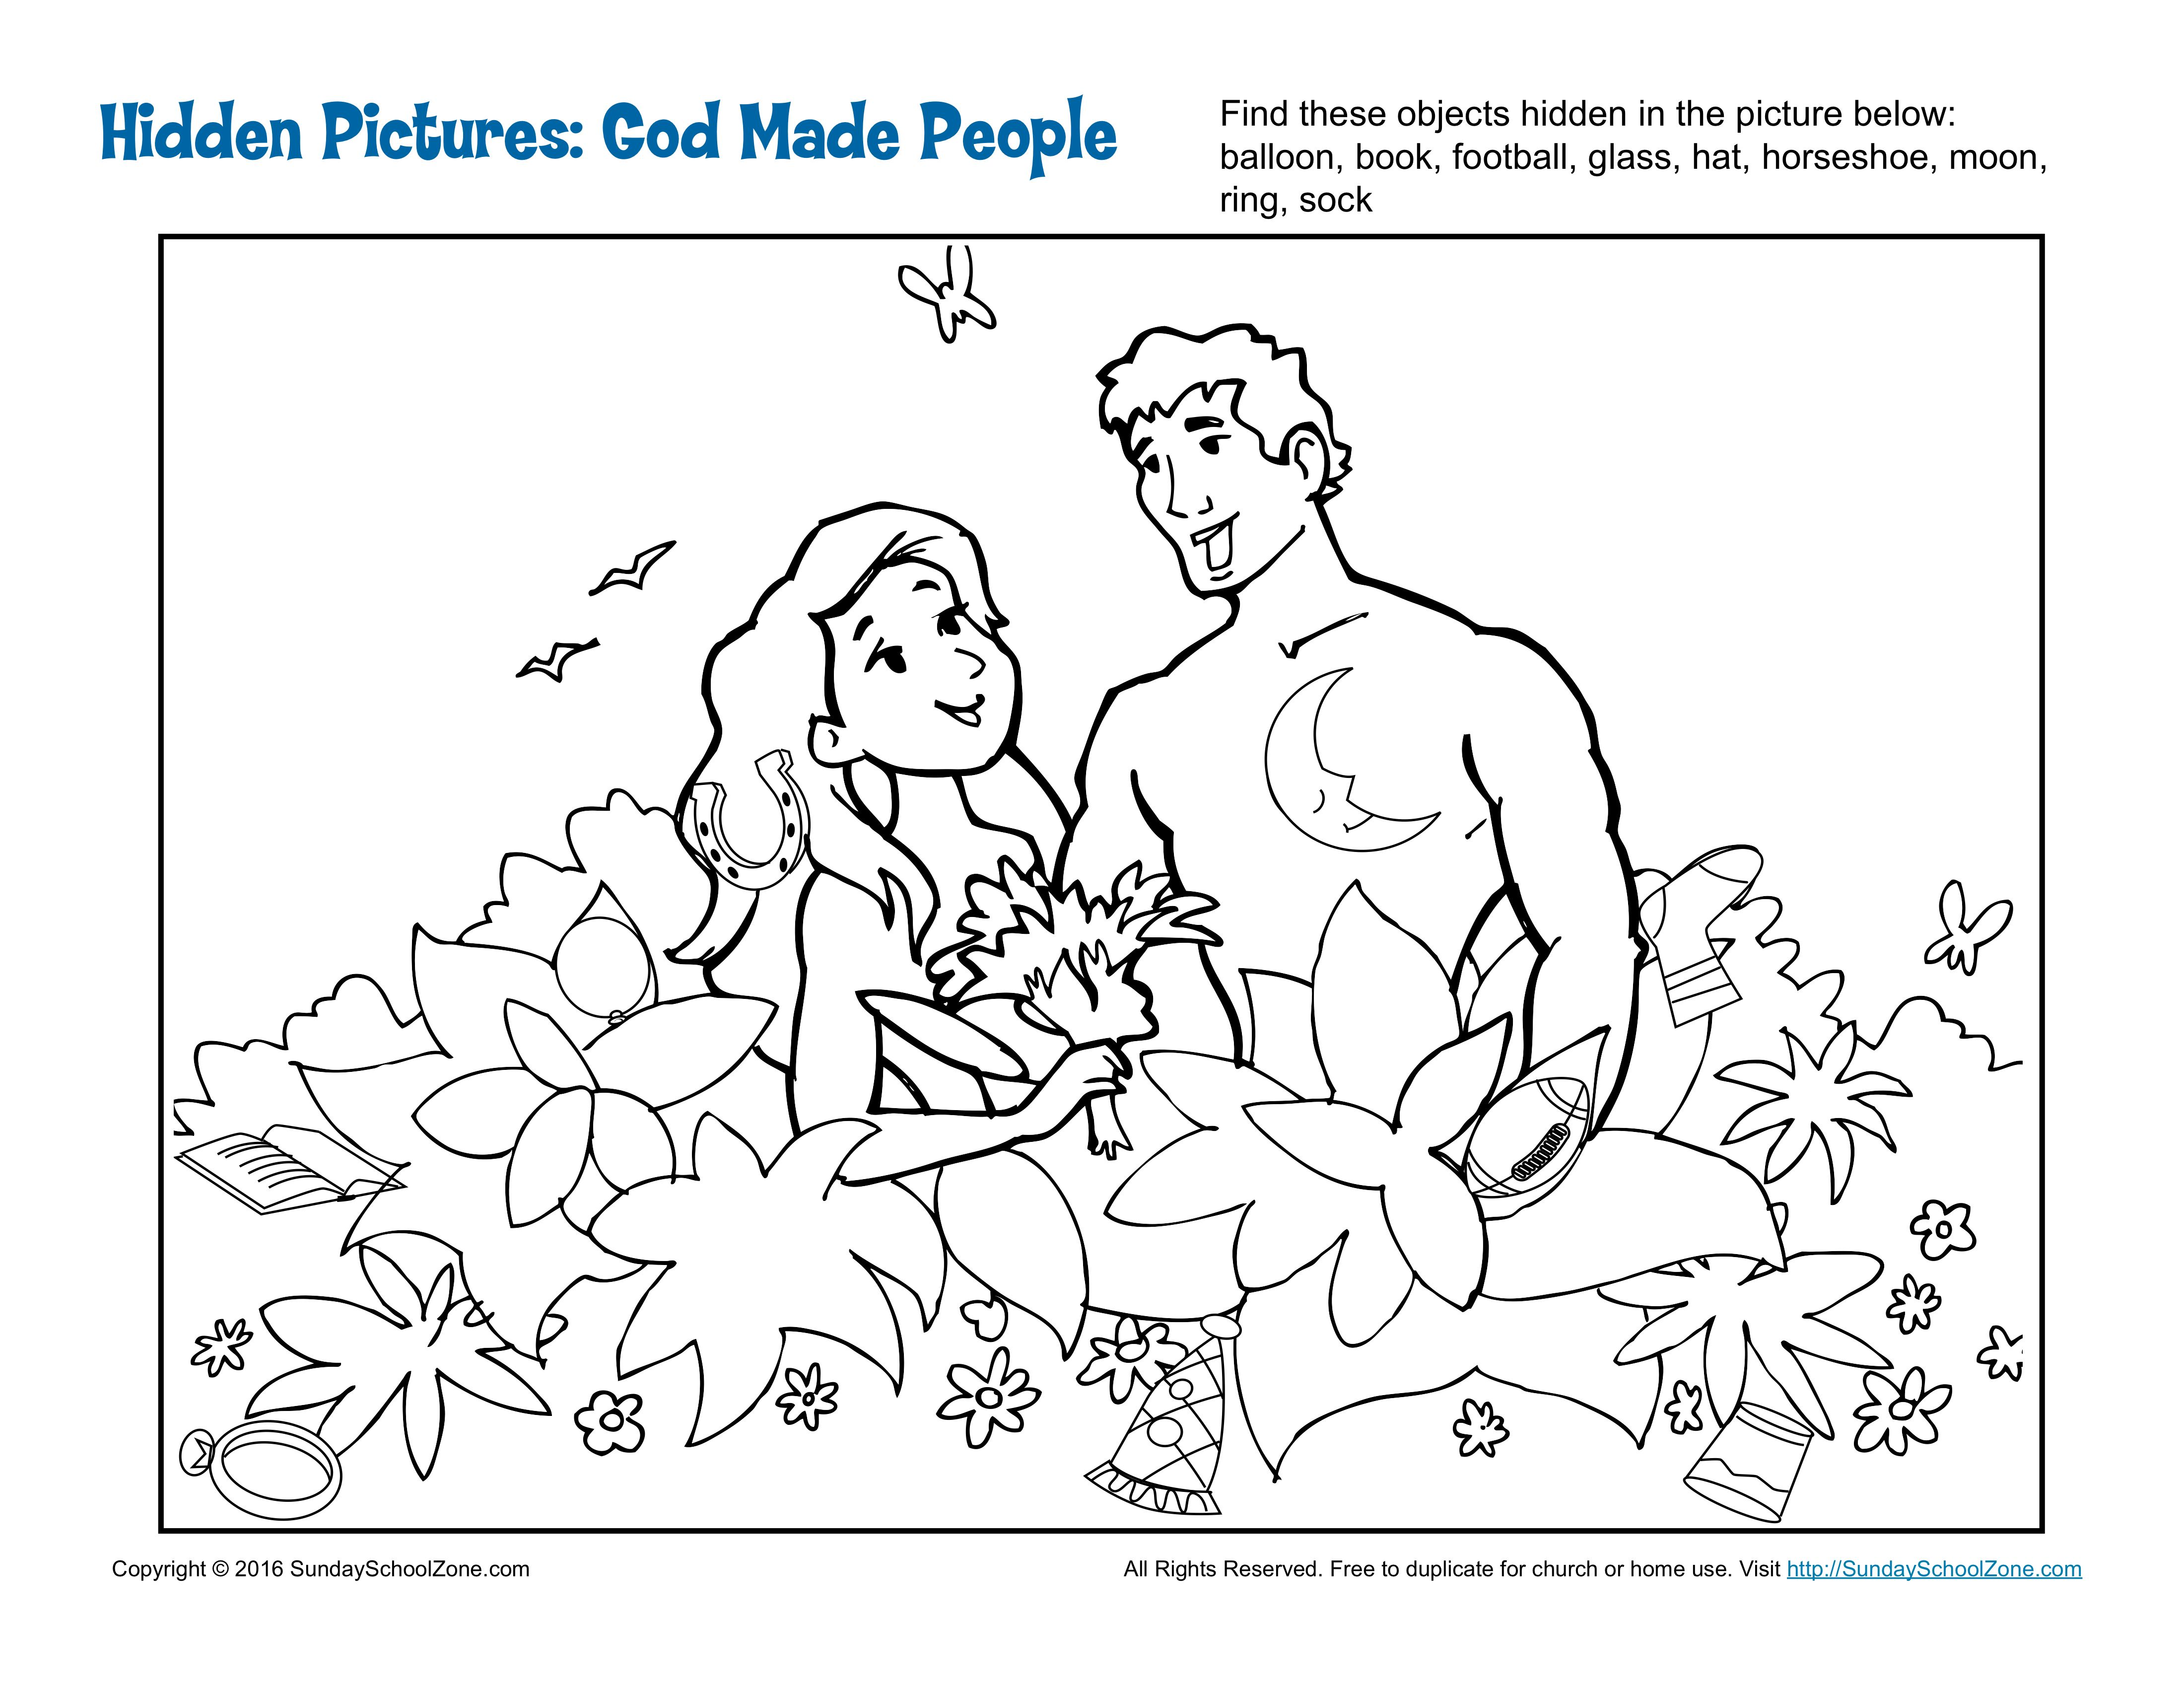 god made people hidden pictures adam and eve pinterest